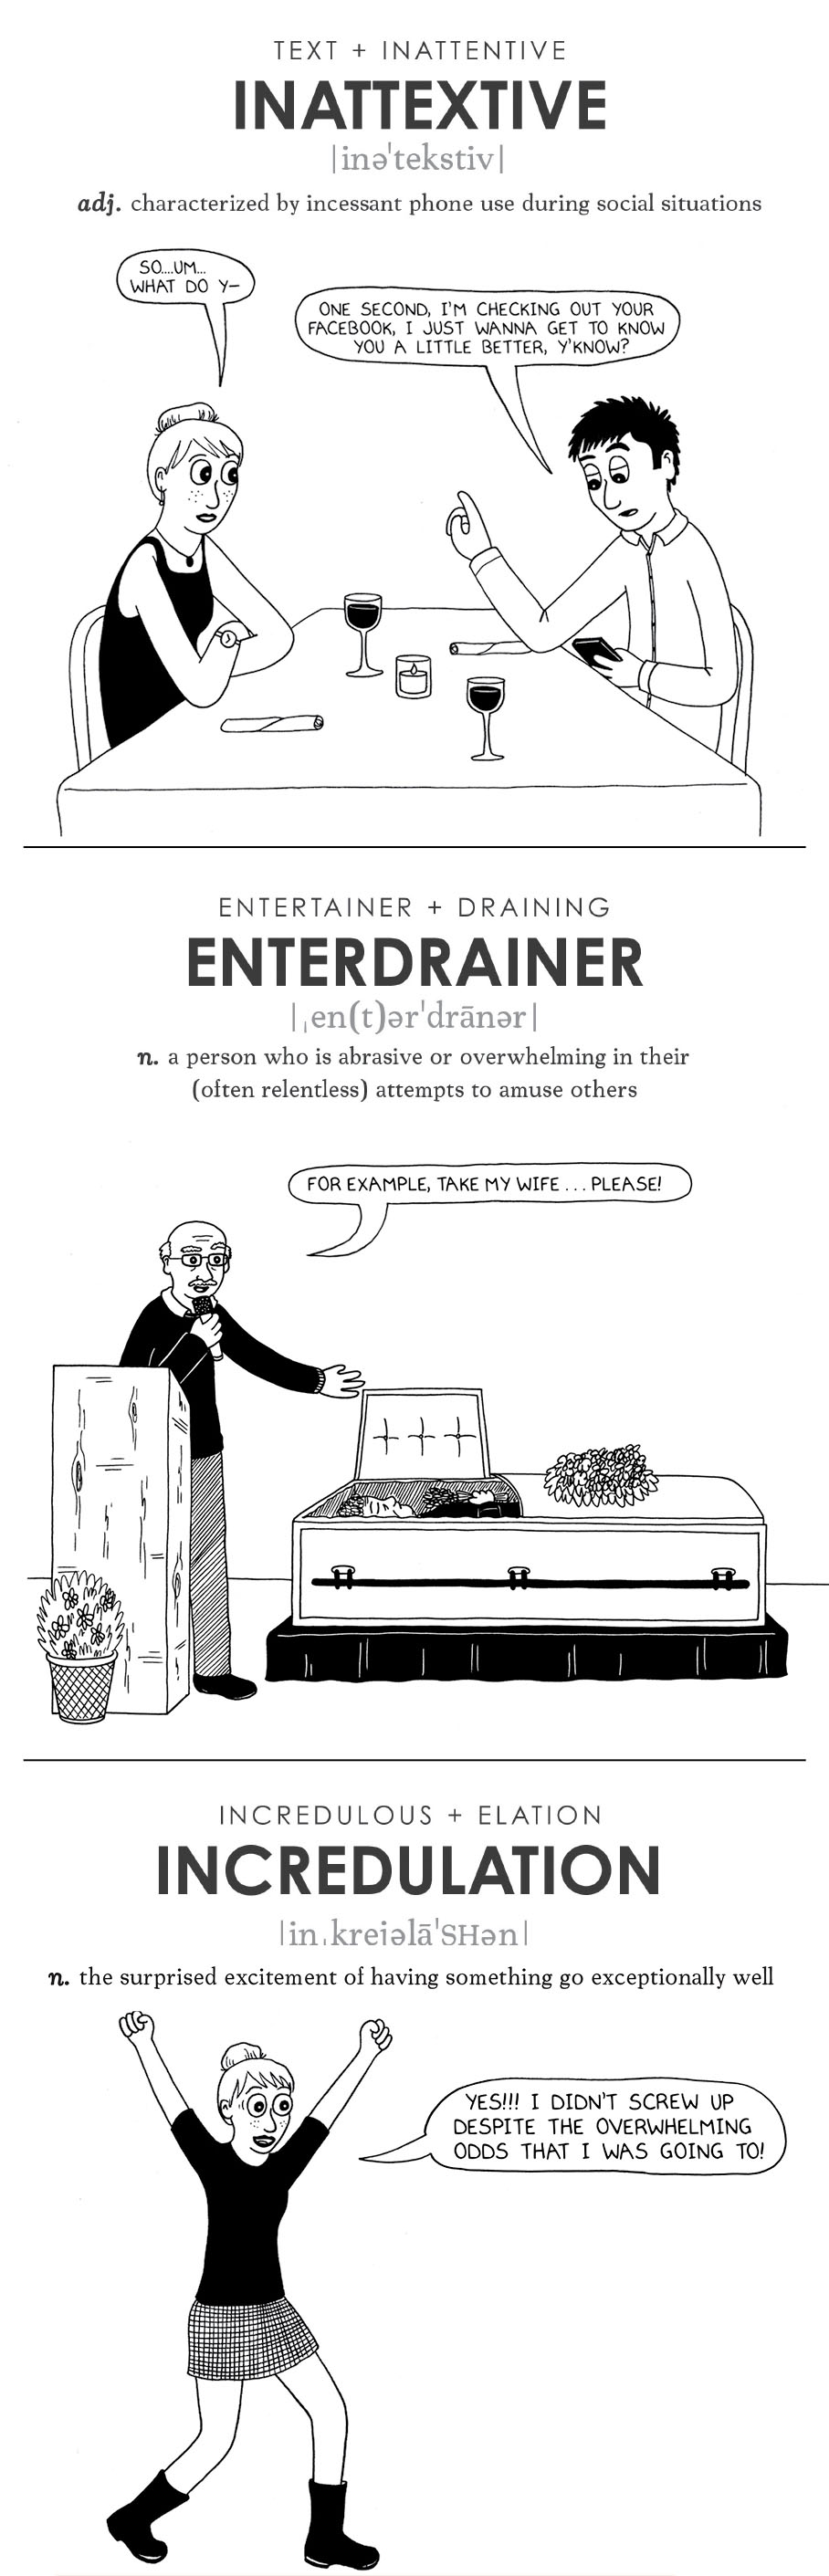 Excerpted from The Emotionary: A Dictionary of Words That Don't Exist for Feelings That Do.